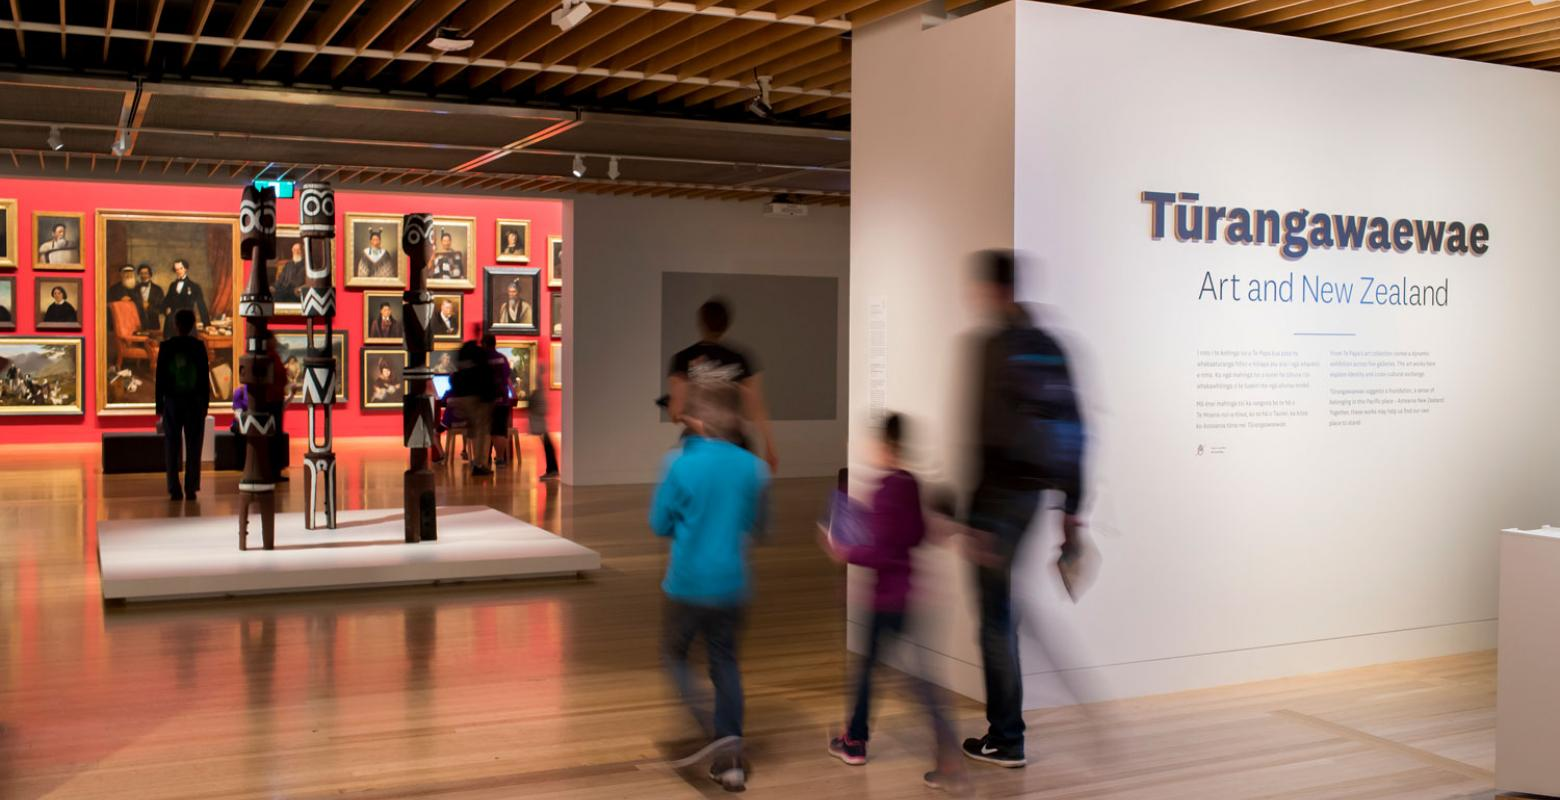 Visitors walking into the entrance of a gallery the words 'Tūrangawaewae' are on the walls